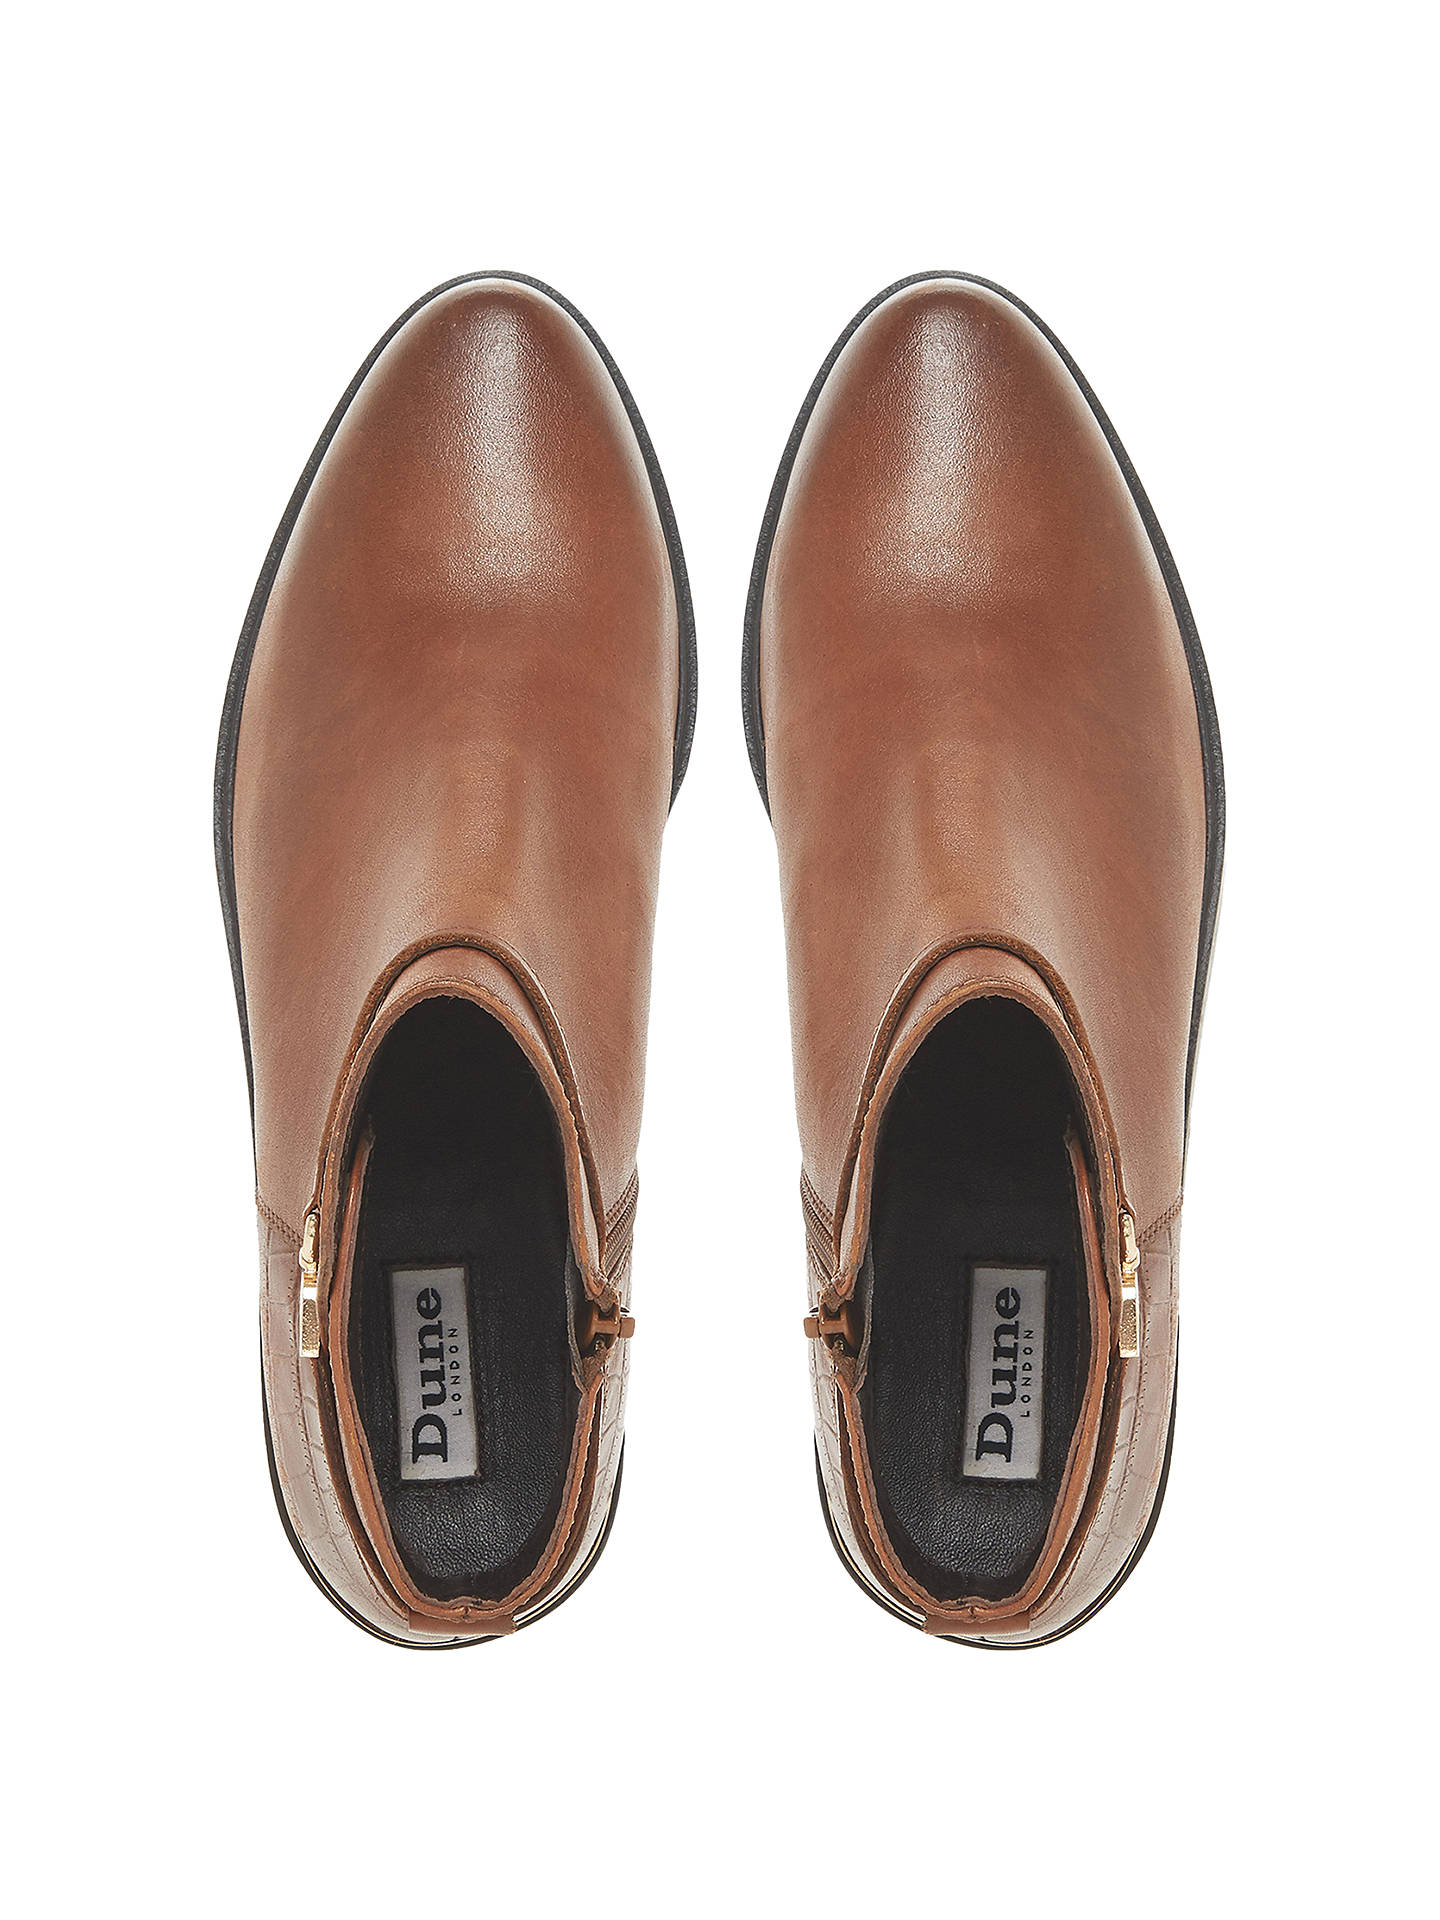 2a6f8c084c9 Dune Peppy Block Heel Ankle Chelsea Boots, Tan Leather at John Lewis ...